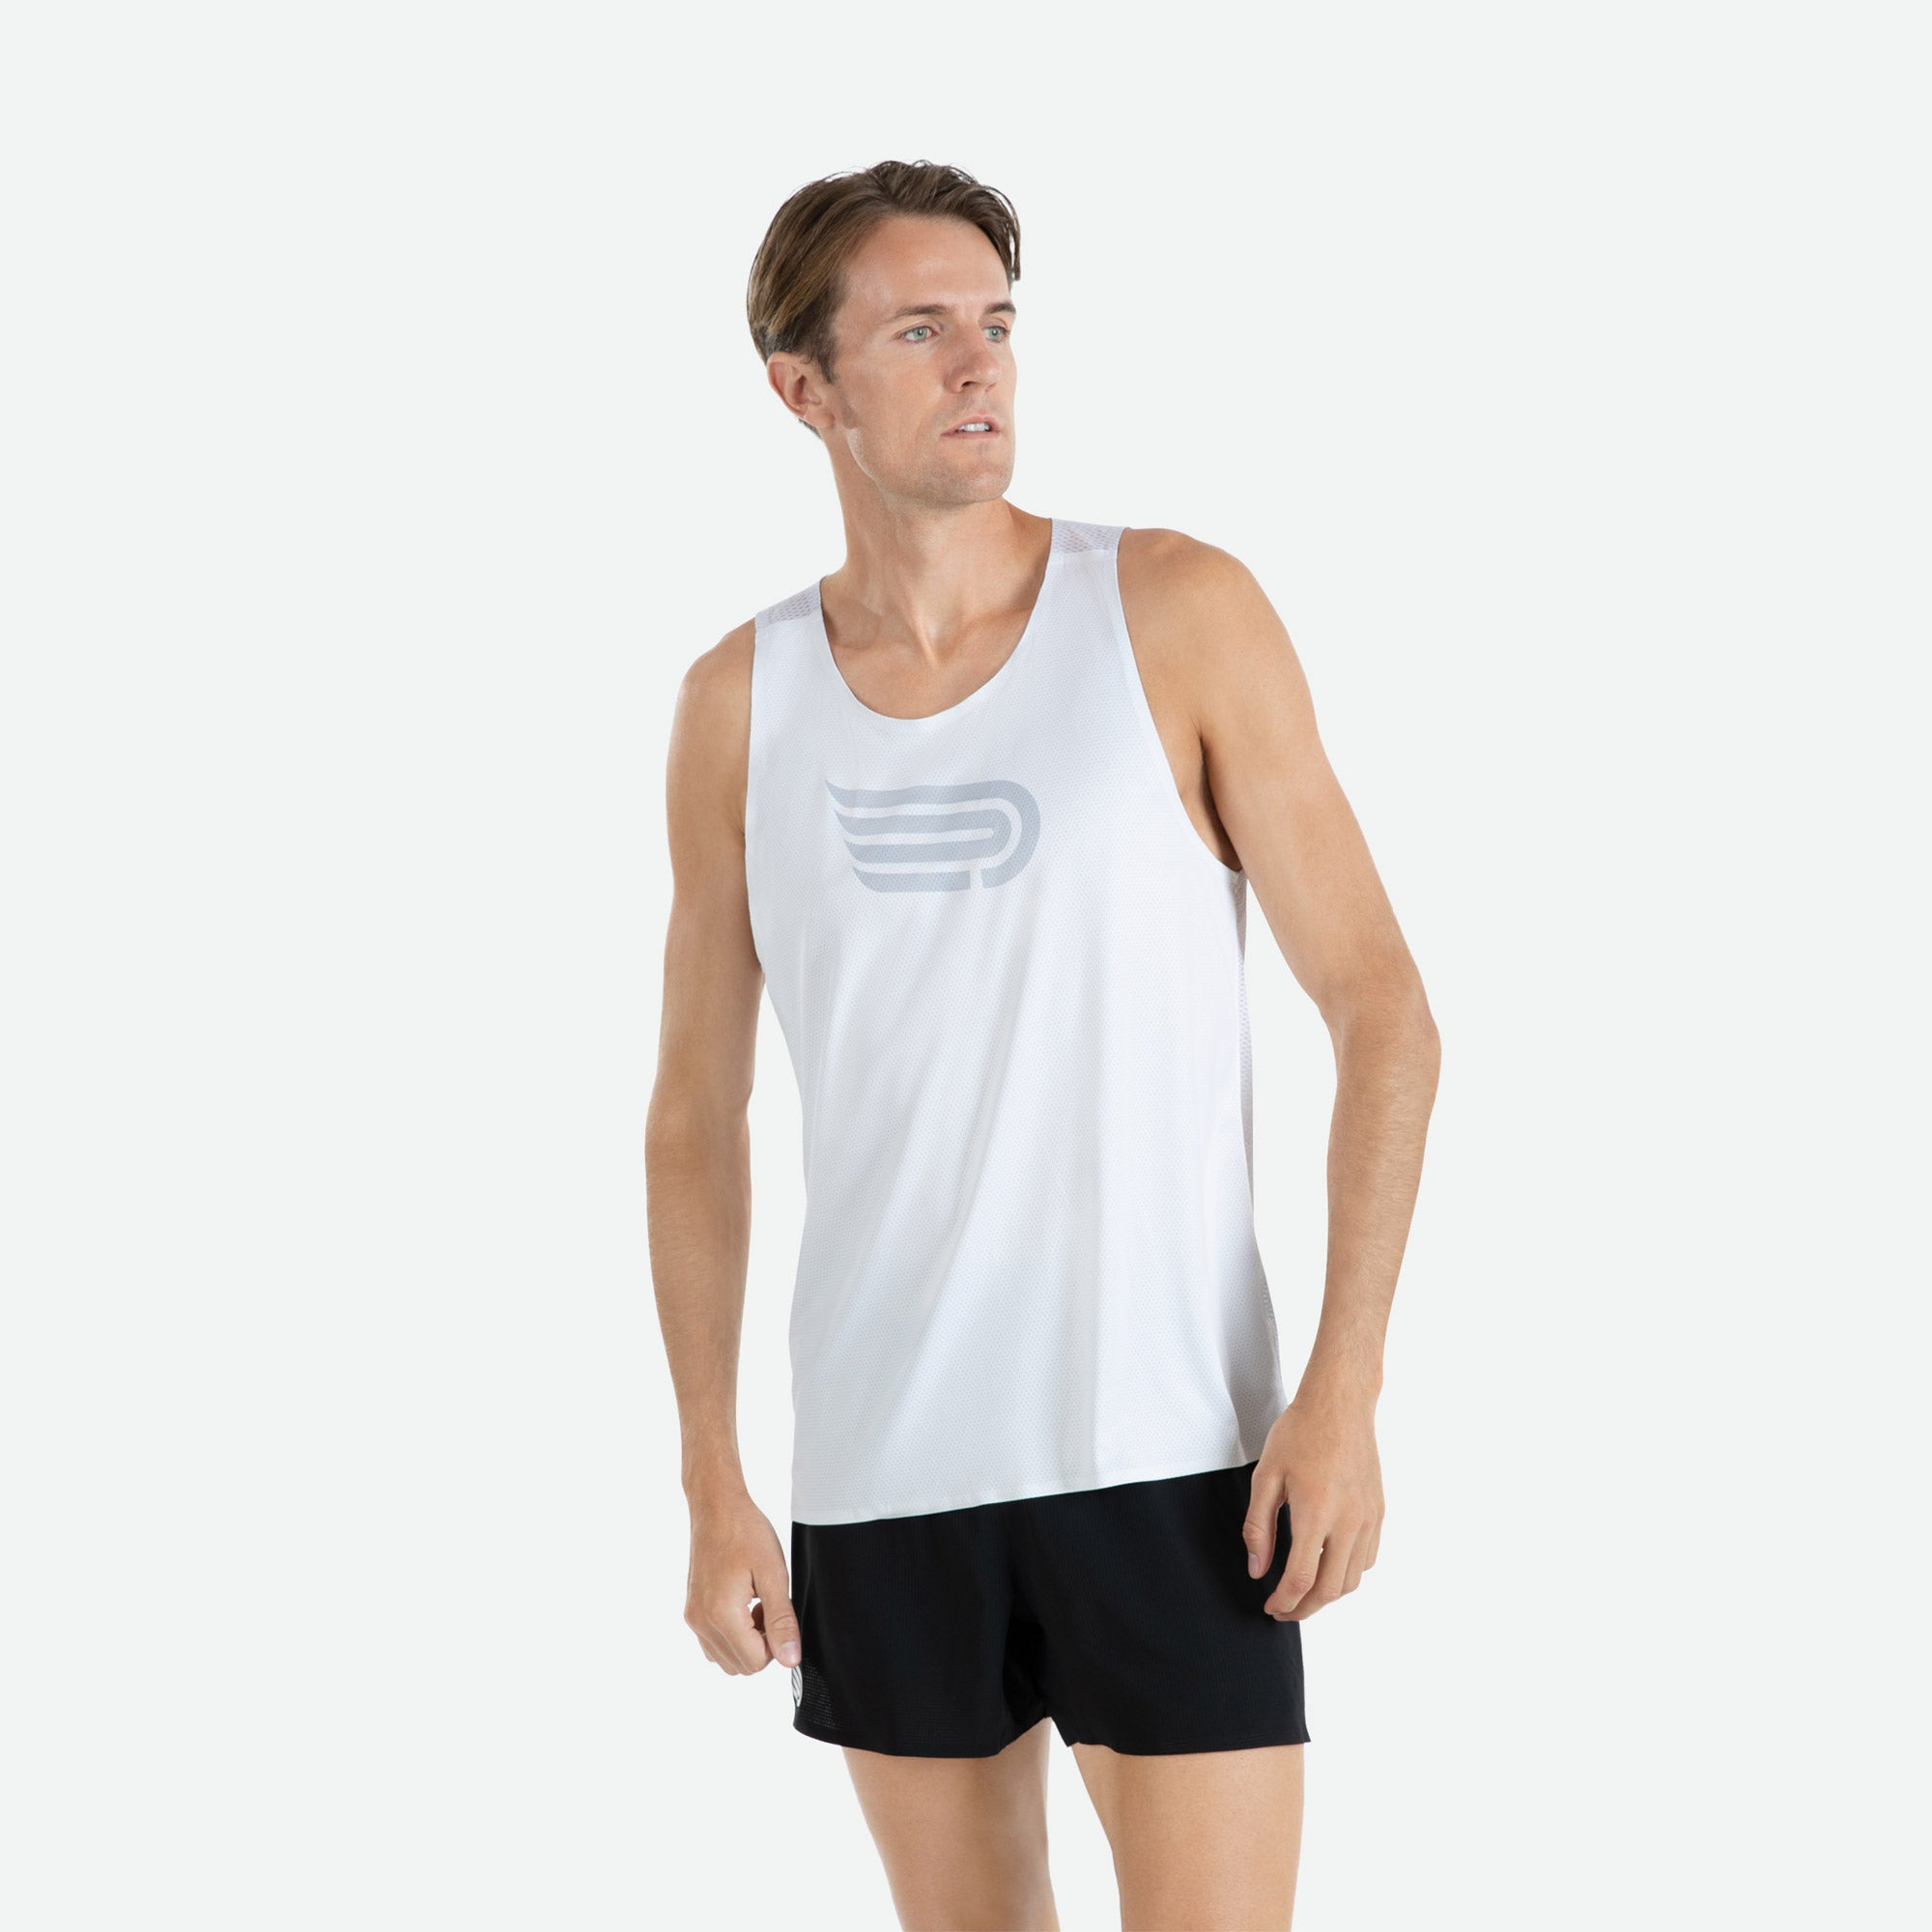 Engineered 3D vent mesh structure for optimal ventilation on the back of our Pressio men's Ārahi white/light grey singlet.